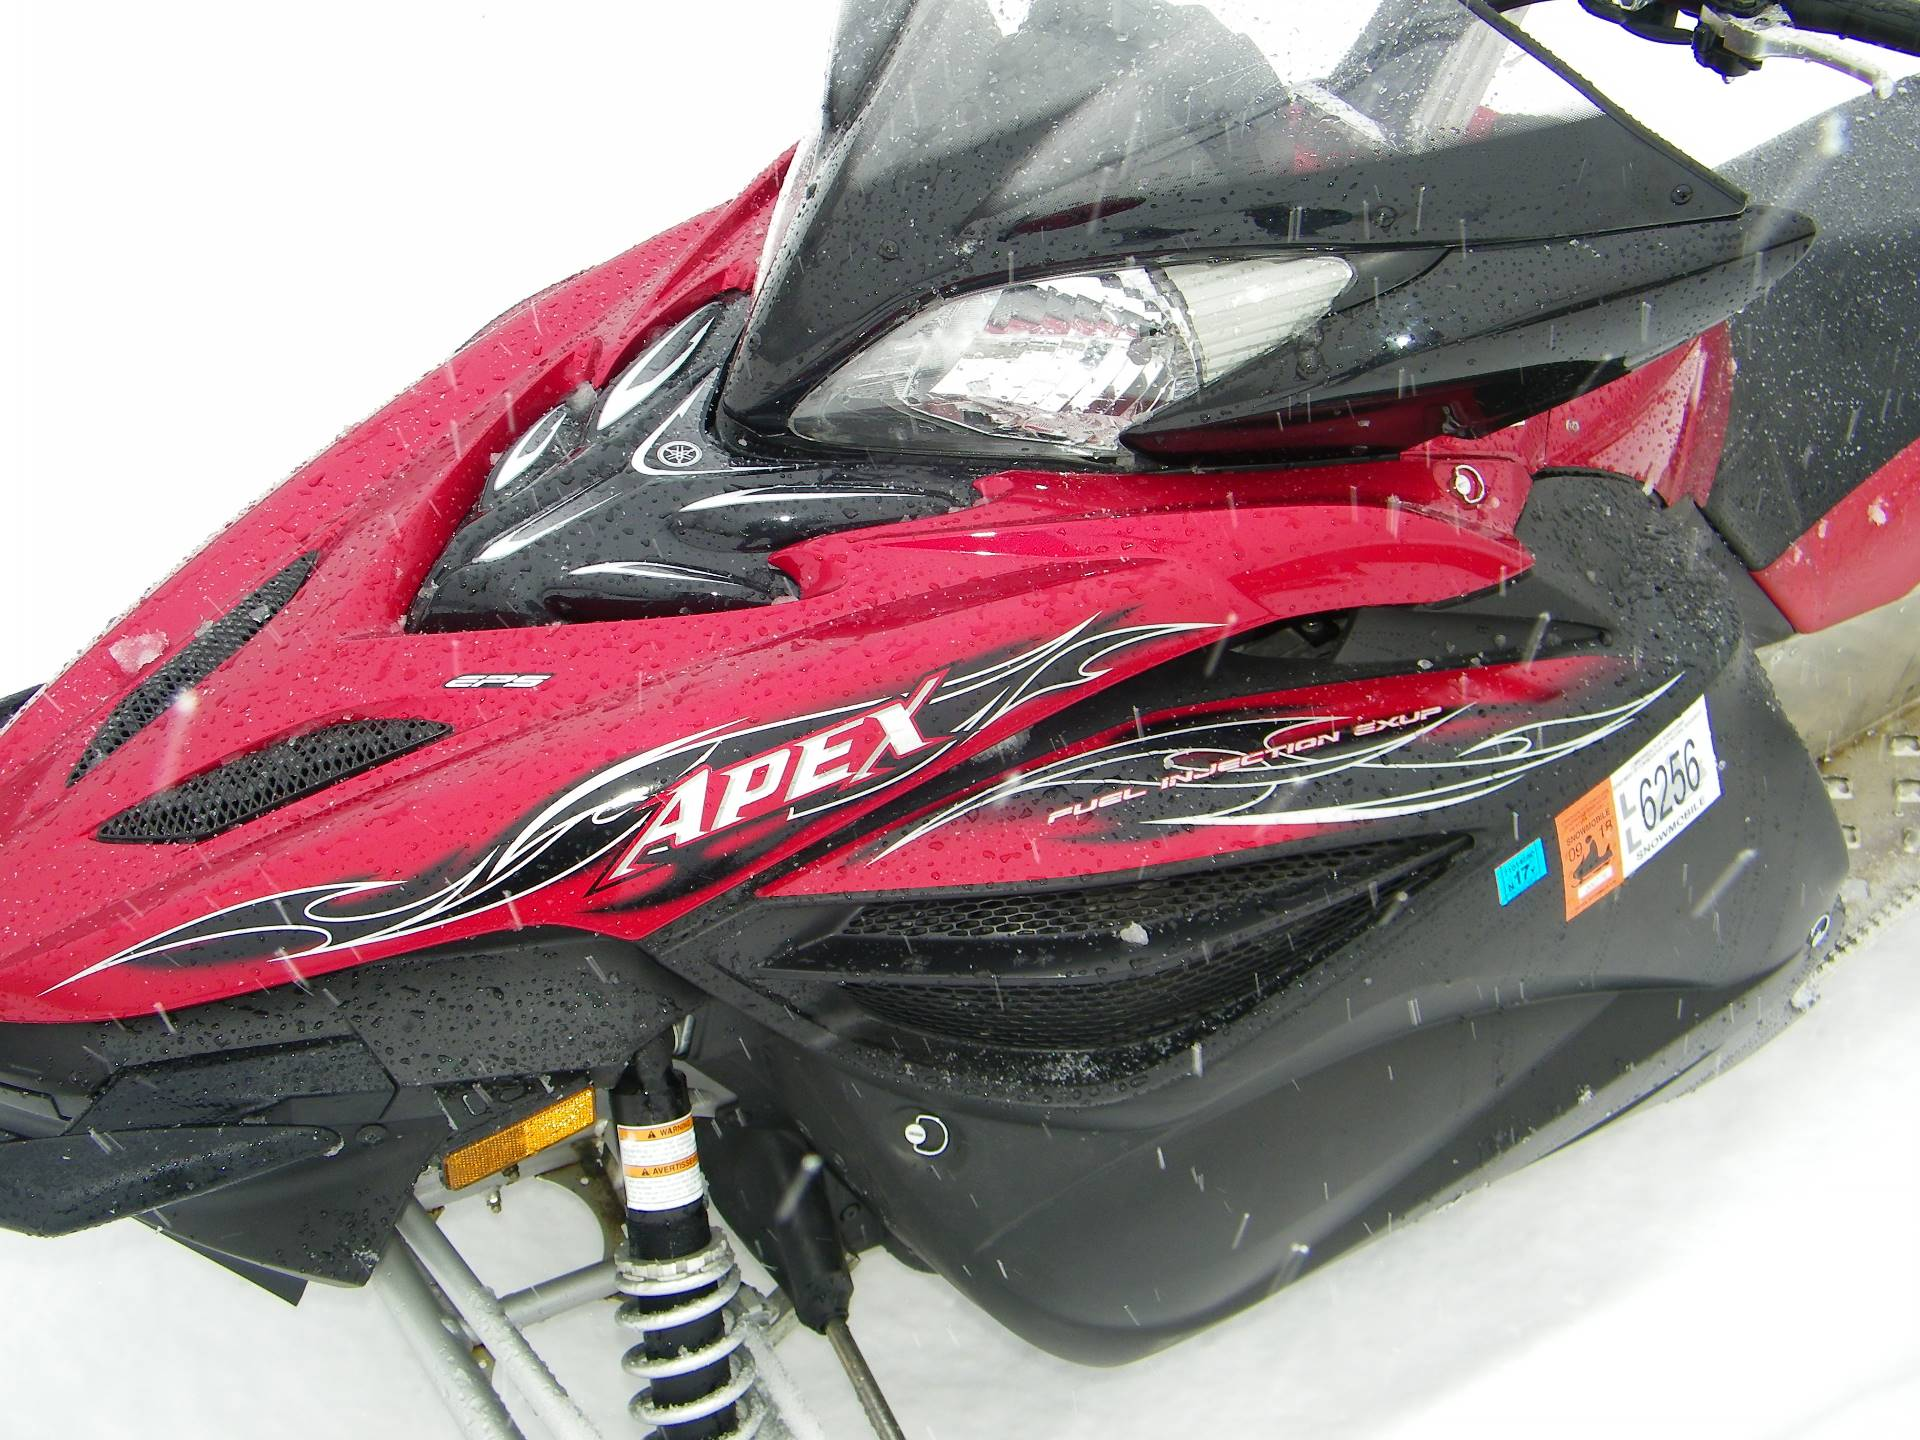 2011 Yamaha Apex XTX in Galeton, Pennsylvania - Photo 1